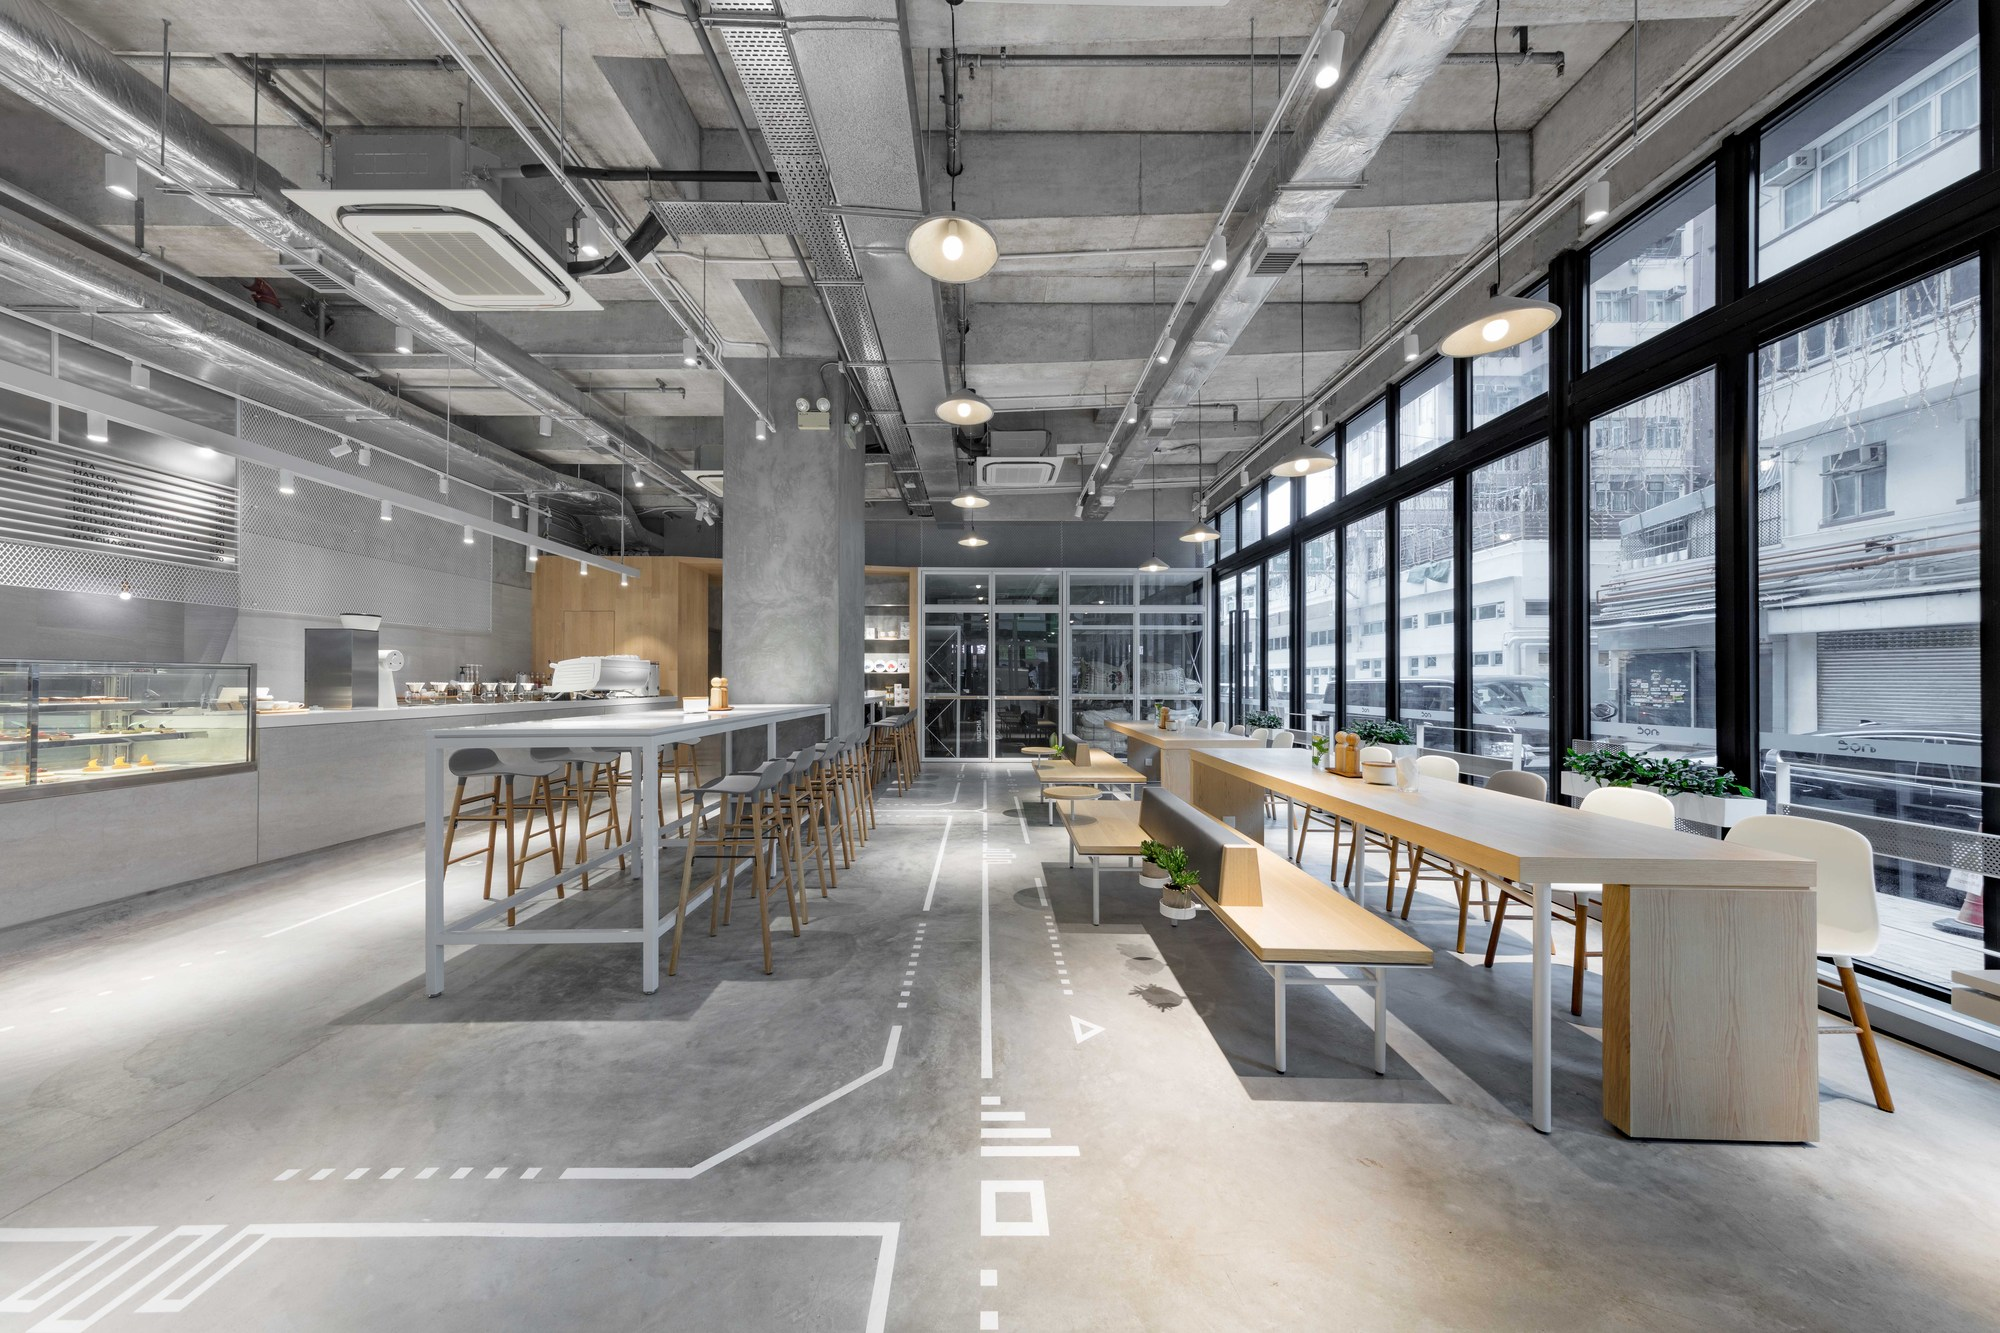 Noc Coffee Co Studio Adjective Archdaily